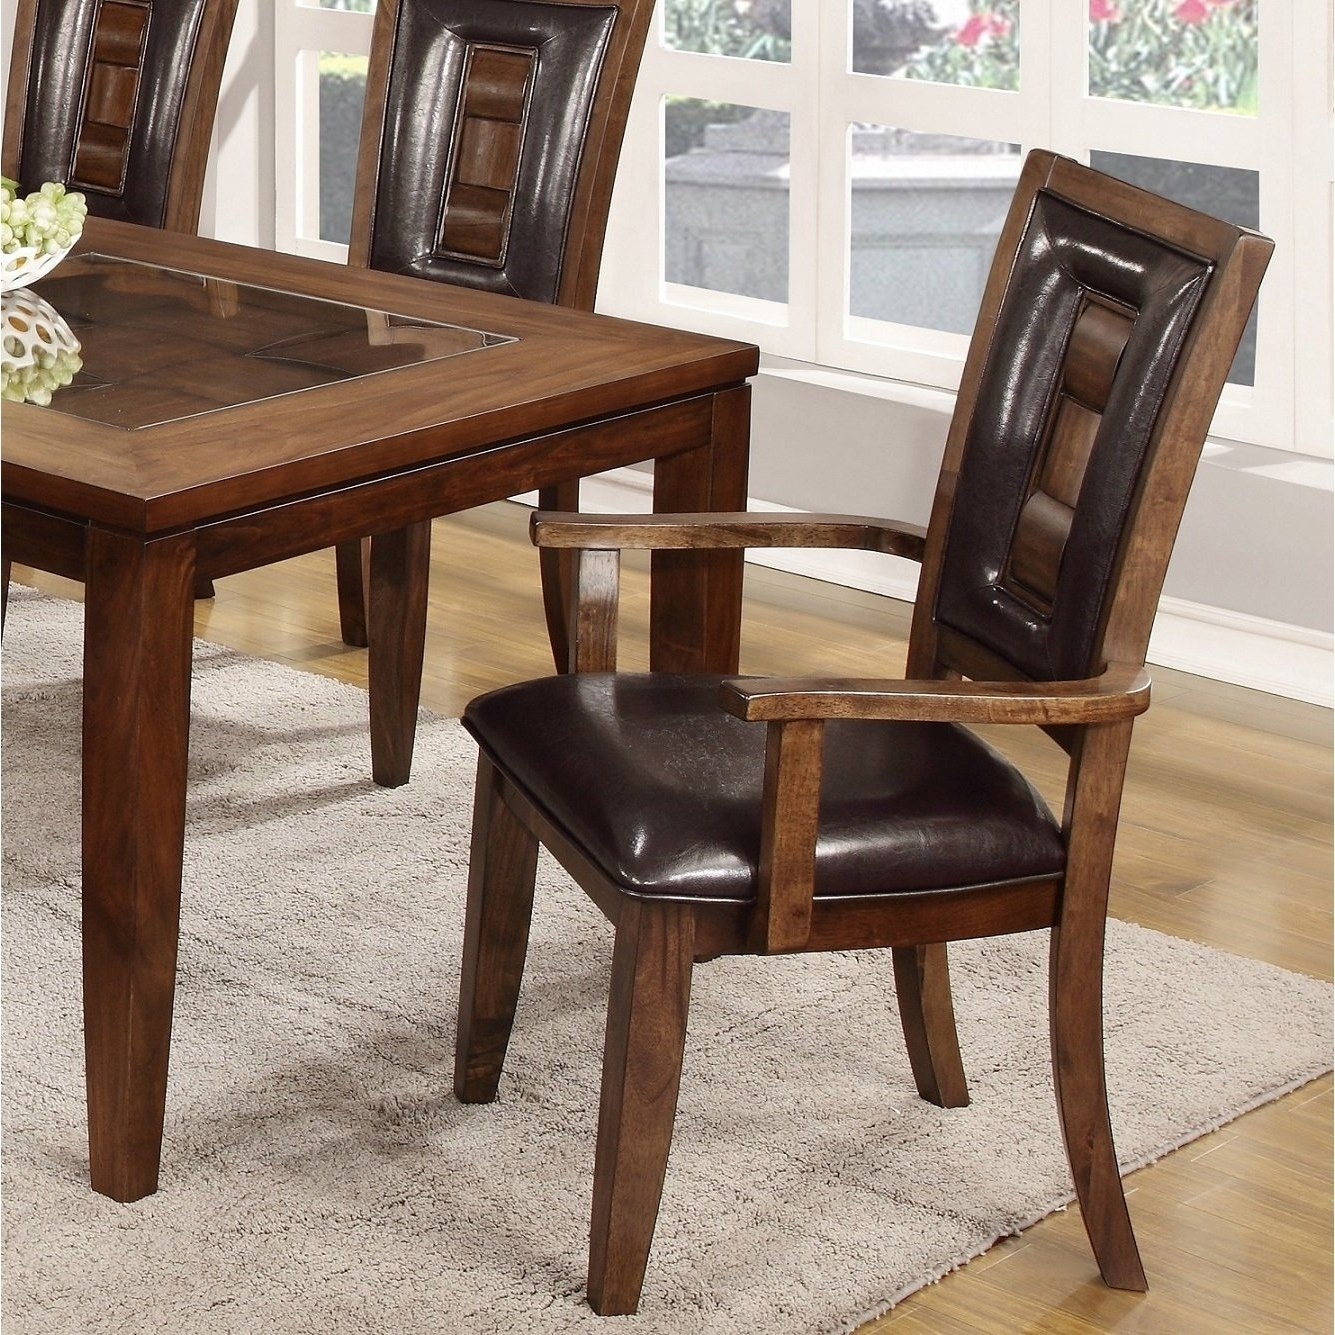 Shop Calais 7 Piece Parquet Finish Solid Wood Dining Table With 6 Regarding Most Recent Parquet 6 Piece Dining Sets (View 5 of 25)